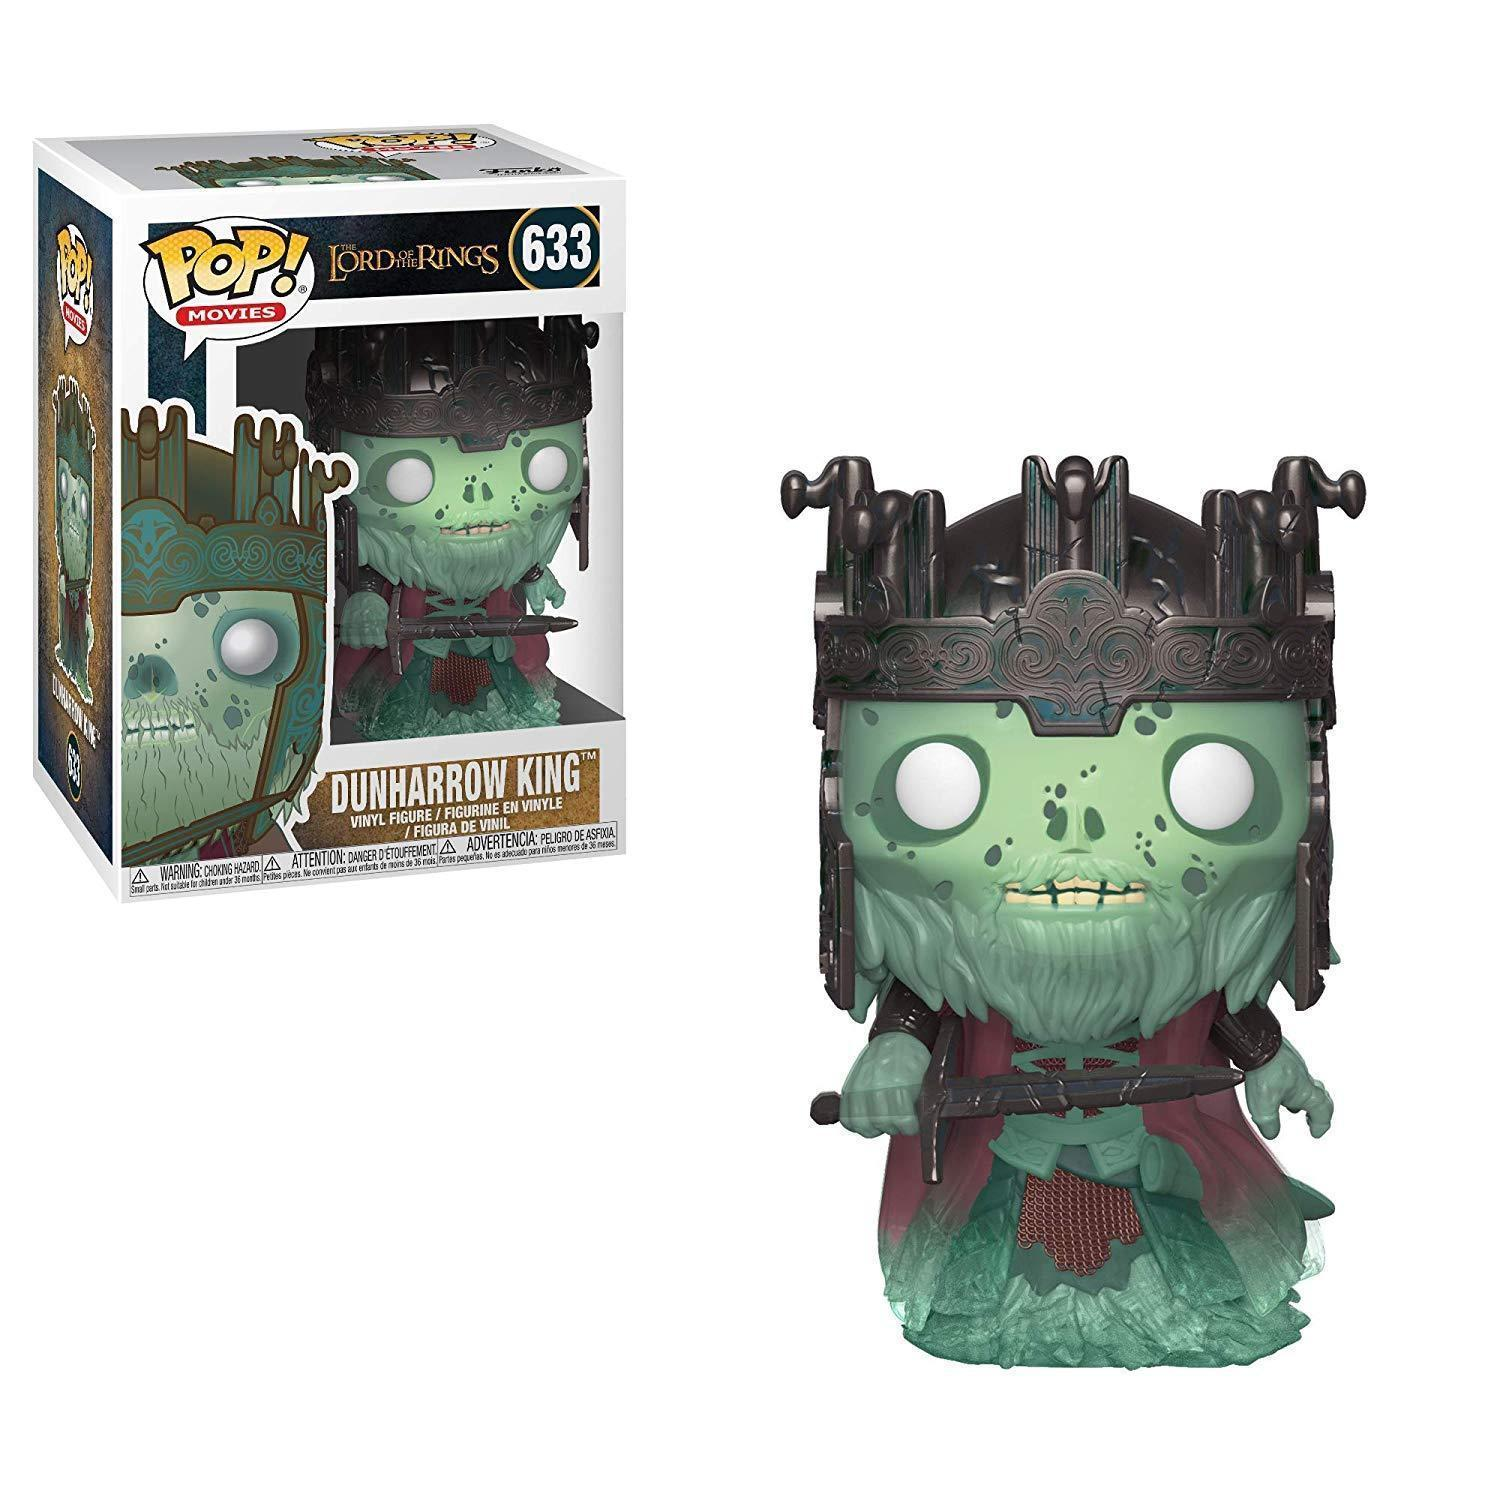 POP! Movies: The Lord of the Rings - Dunharrow King (633) Vinyl Figure